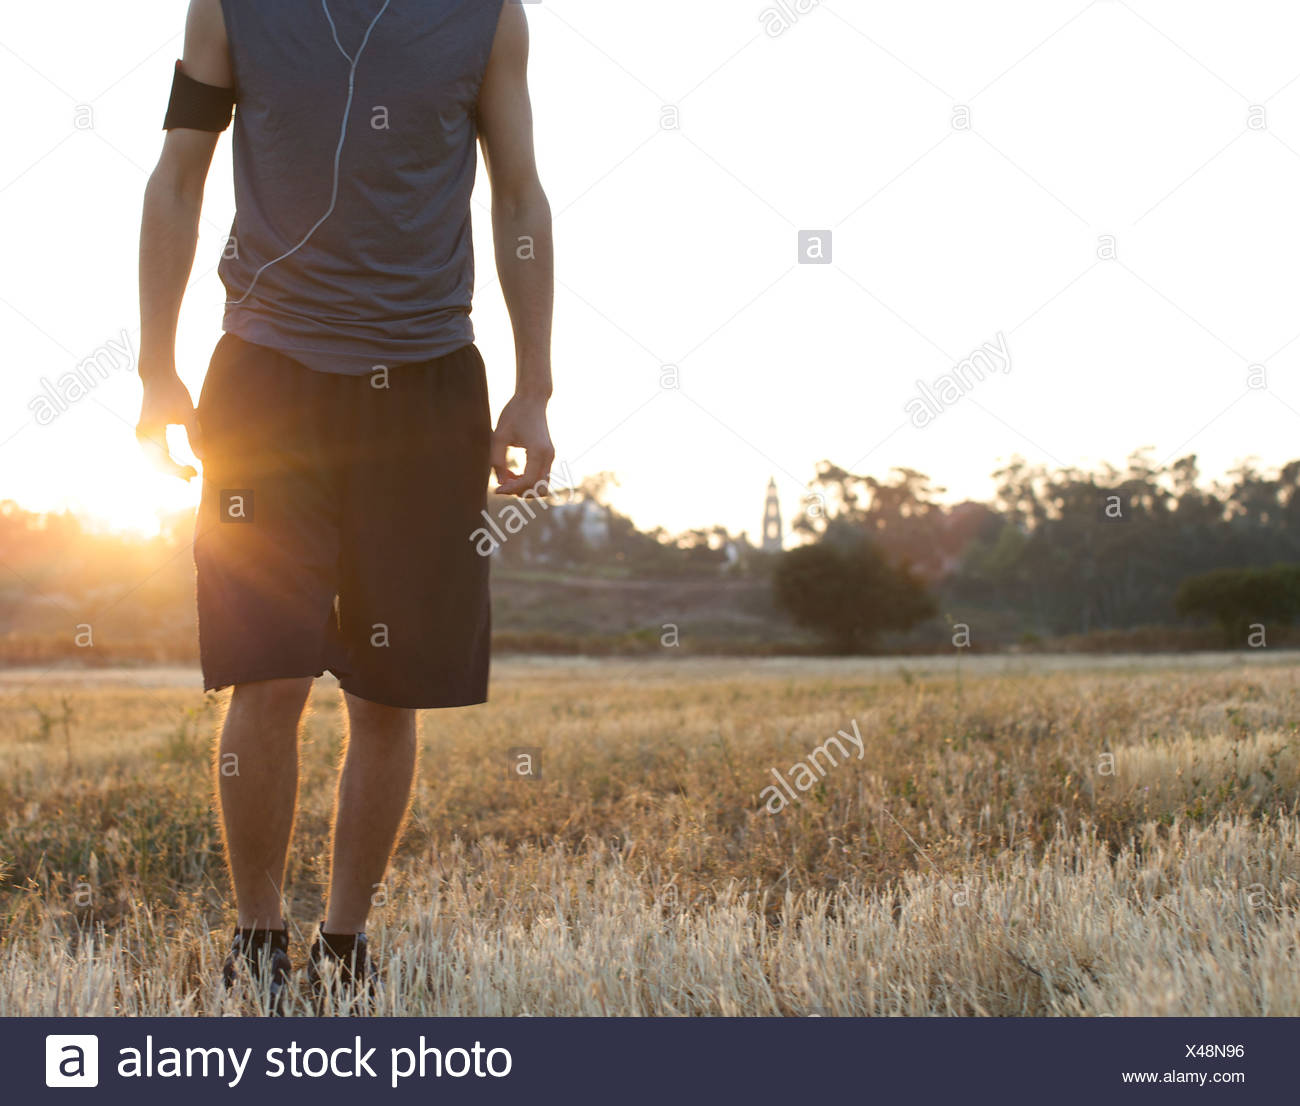 Male runner stays still for a portrait at an open field with backlight in San Diego, California. - Stock Image